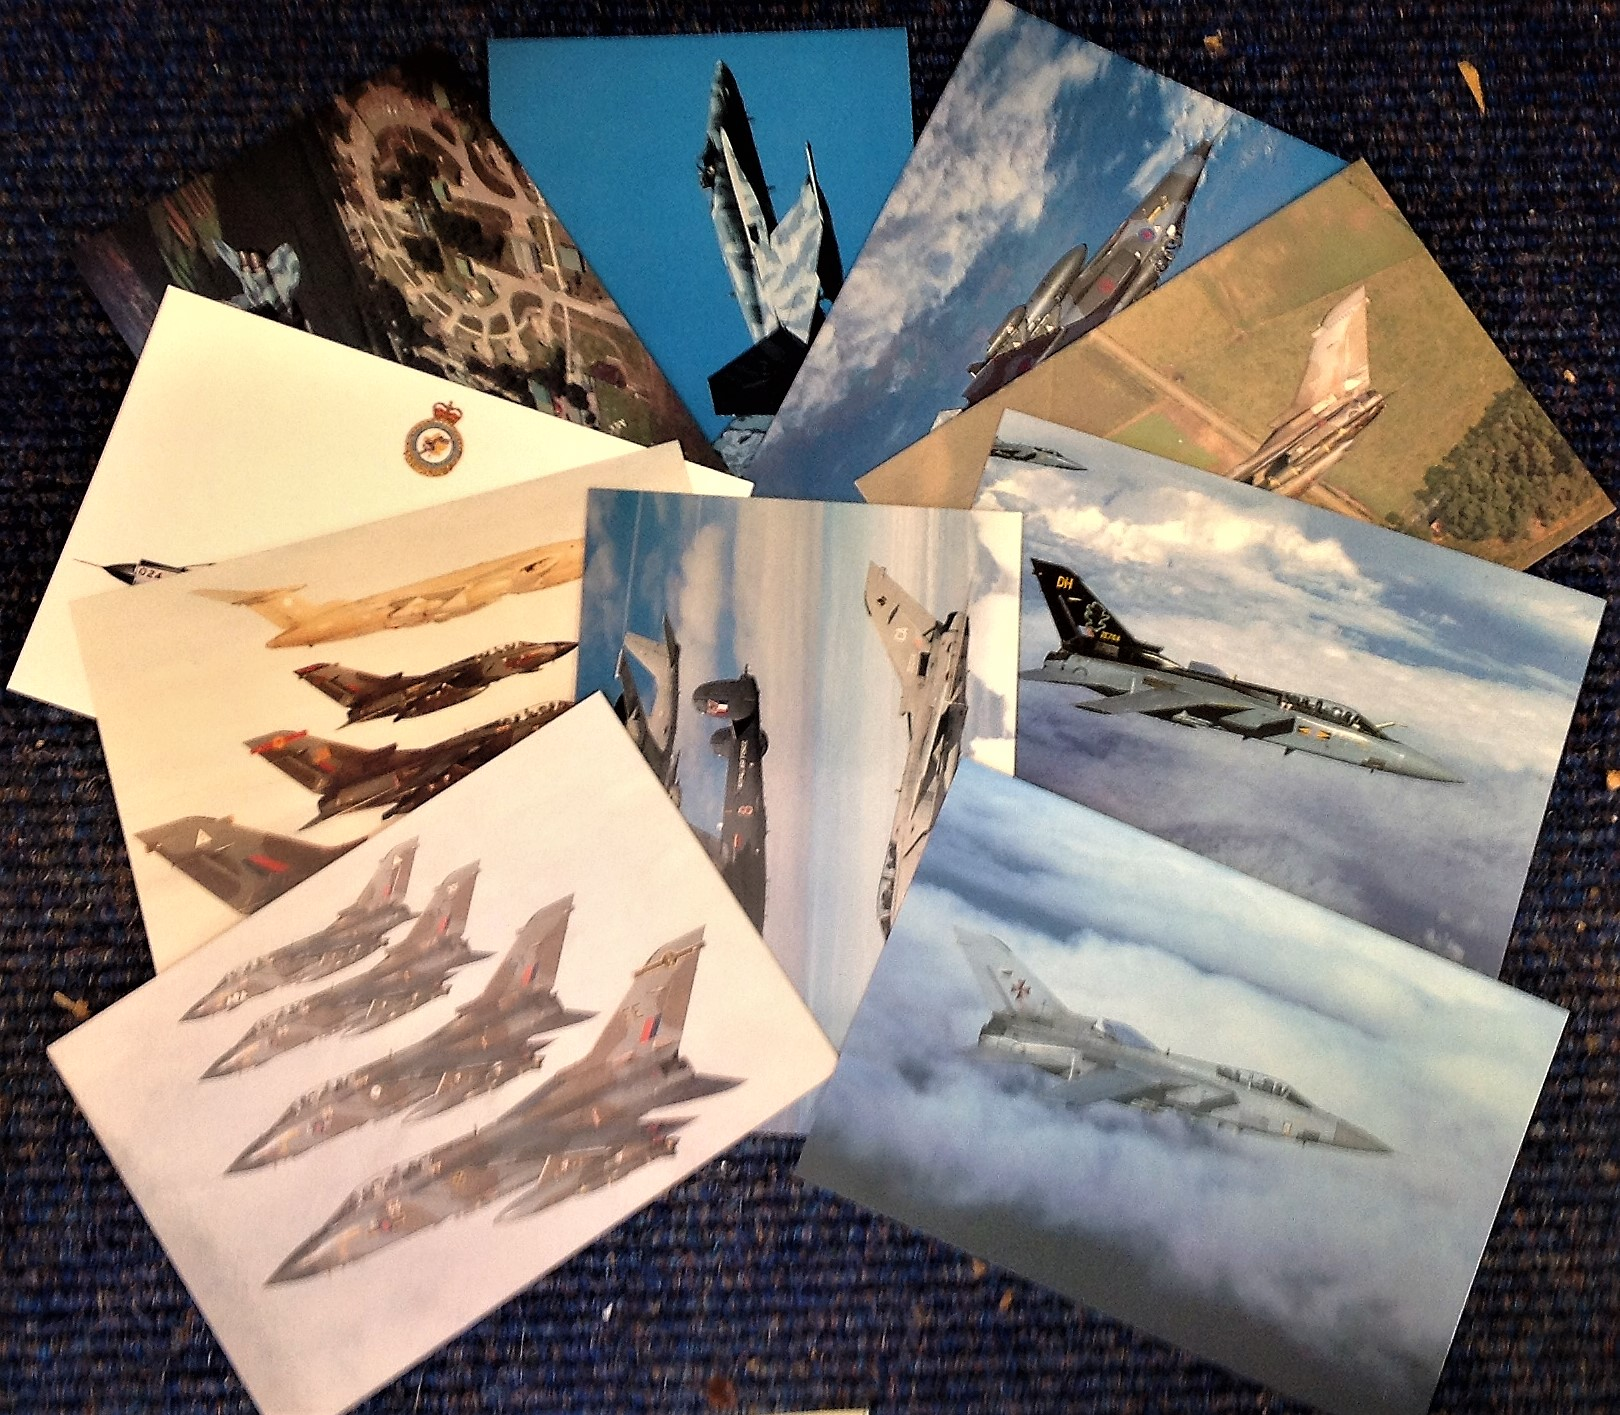 Lot 12 - Aviation postcard collection includes 10 squadron print cards such as Canadian CF-18 Tiger Bird